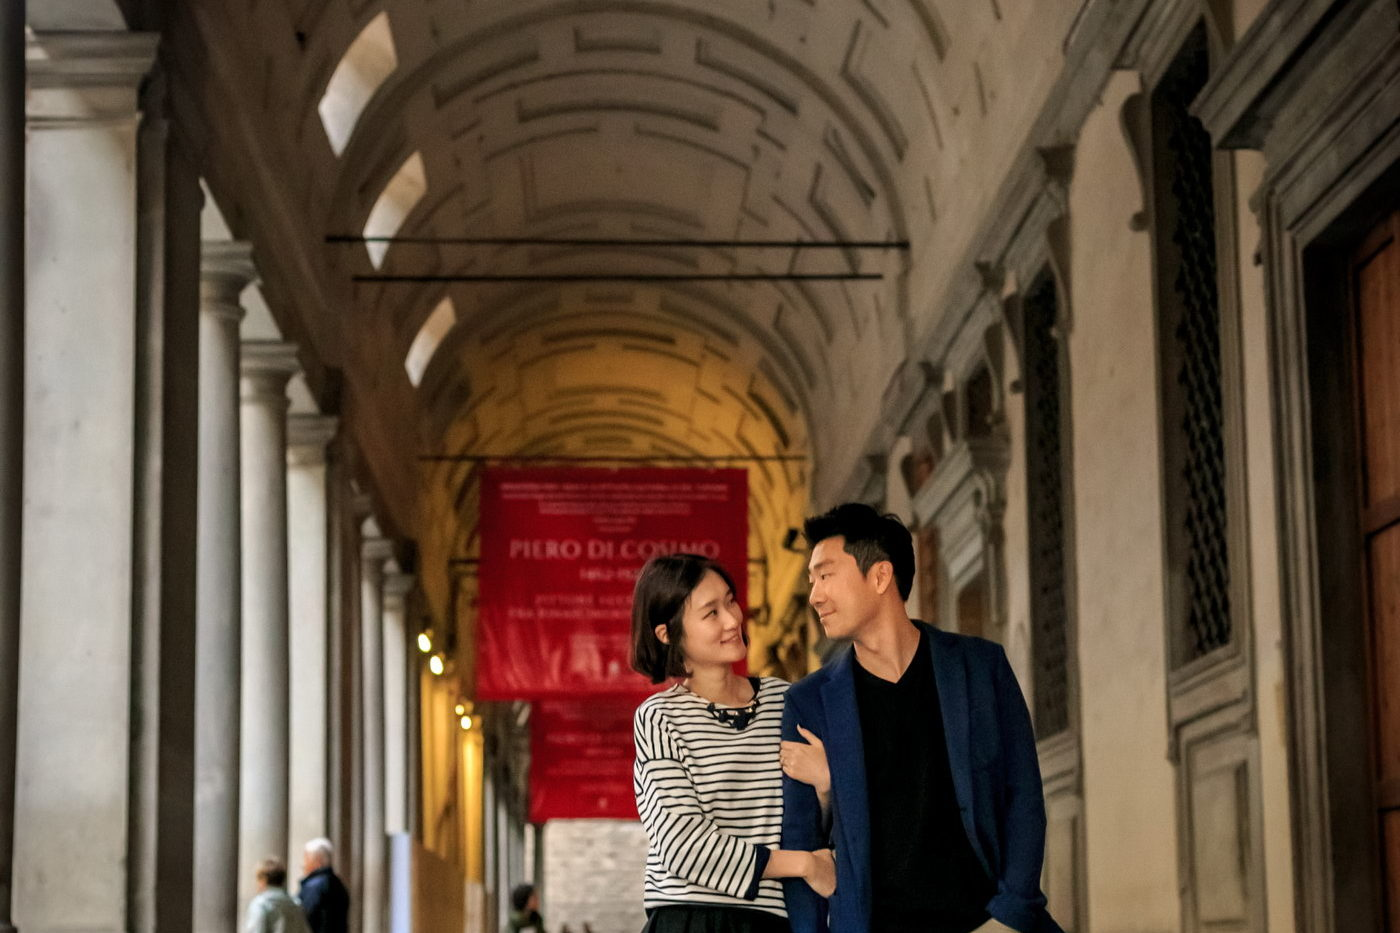 dolceitaliaphotography dolce italia photography florence couples engagement honeymoon photo shoot session couple e-session firenzesnap firenze snap tourist